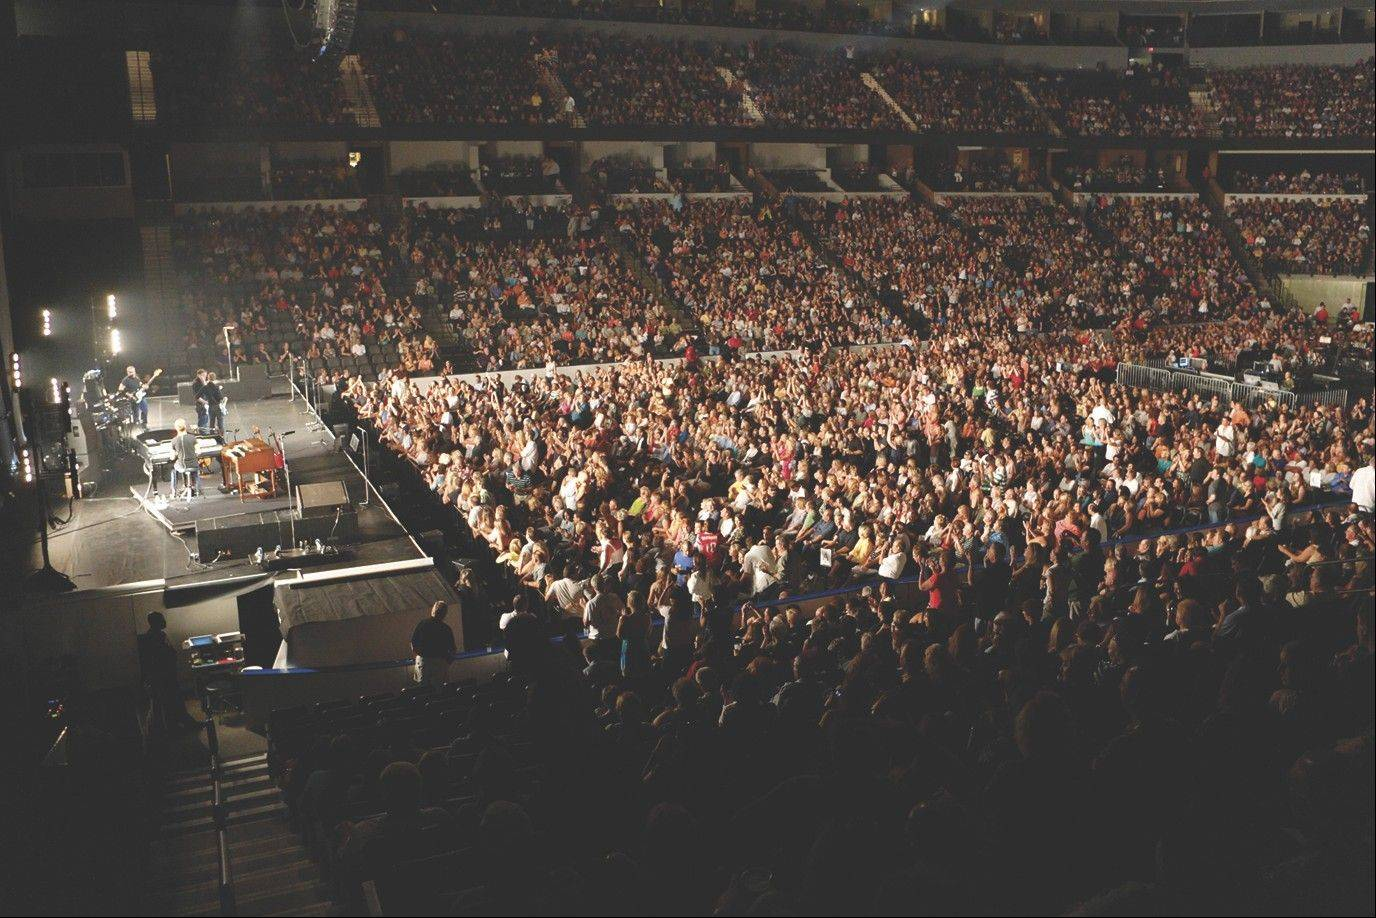 The 11,000-seat Sears Centre in Hoffman Estates had its best year in 2011 hosting concerts, sporting events and family entertainment.